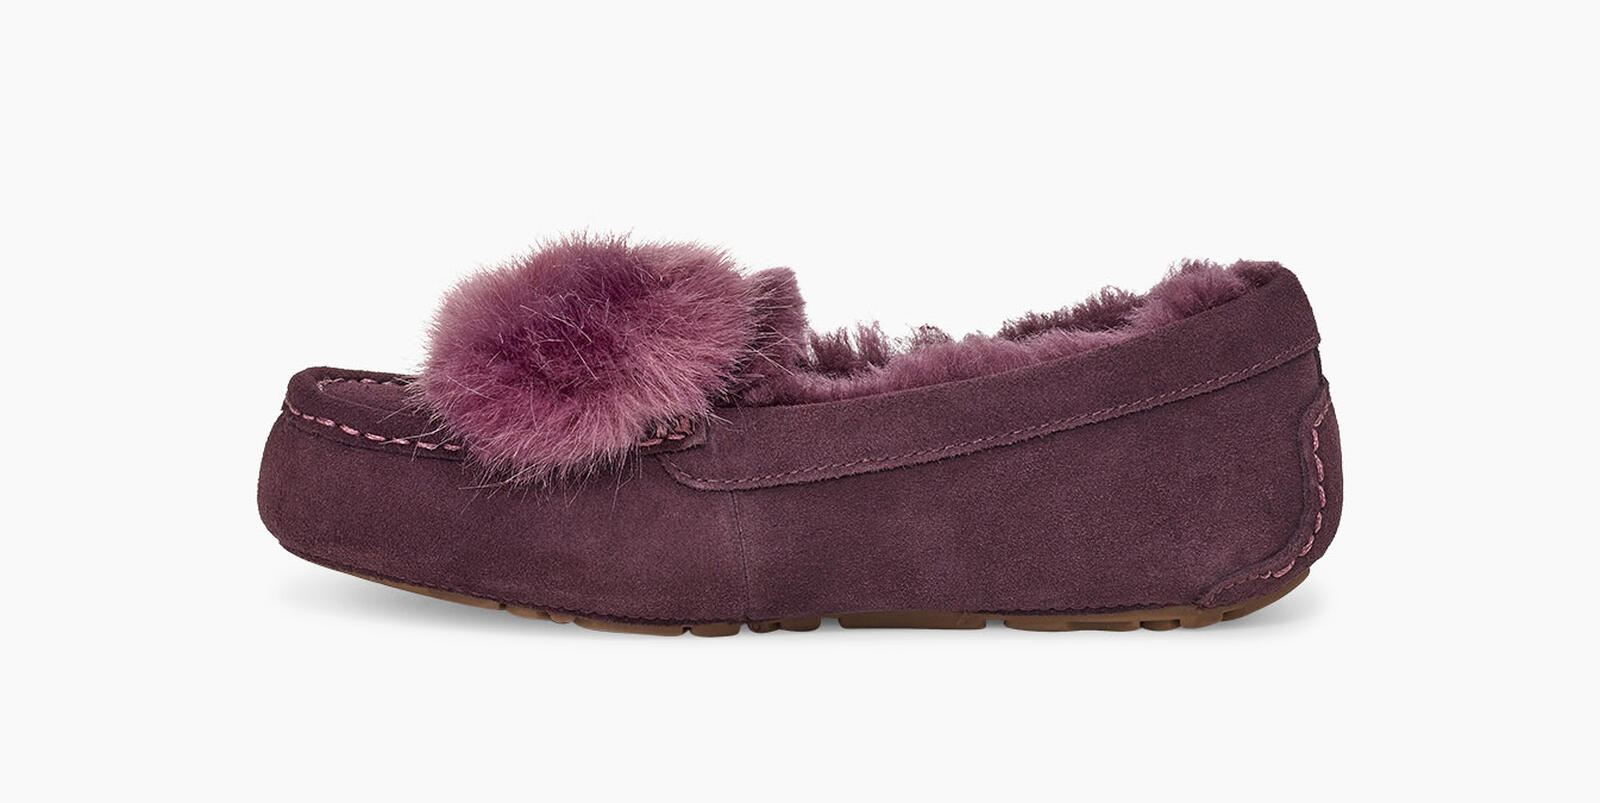 Ansley Puff Bow Slipper